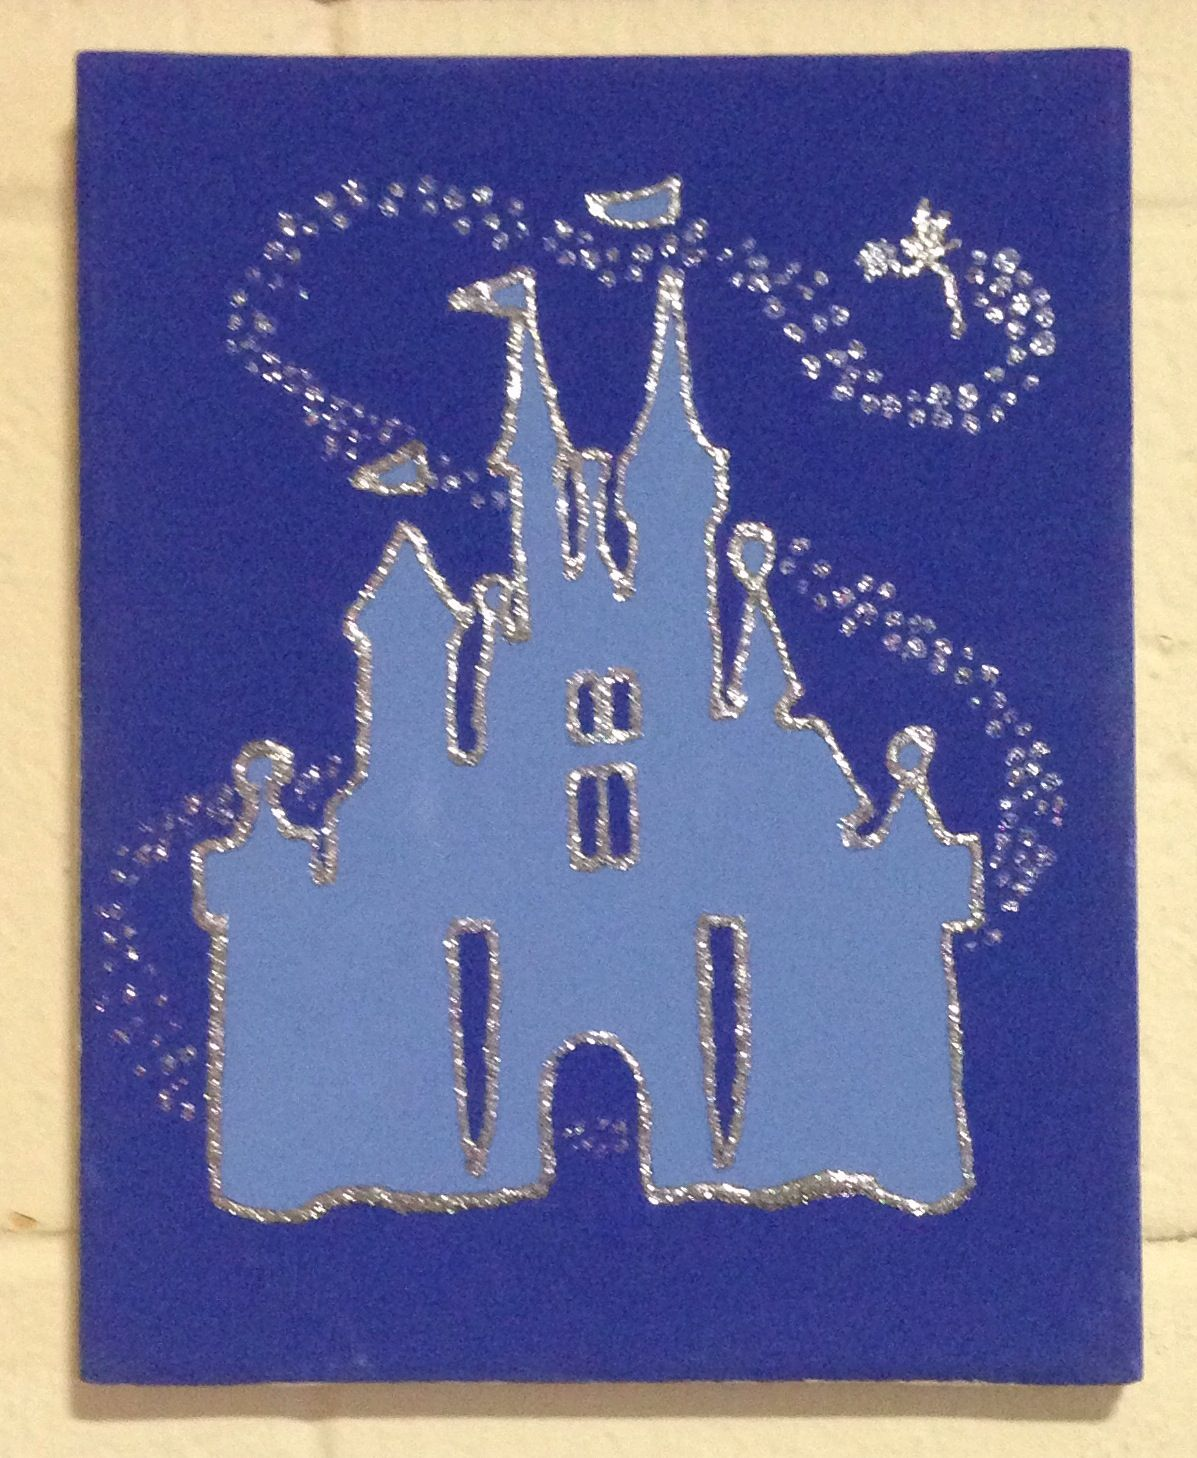 Pin By Kelly Dillon On My Crafty Creations Disney Crafts Canvas Crafts Diy Painting